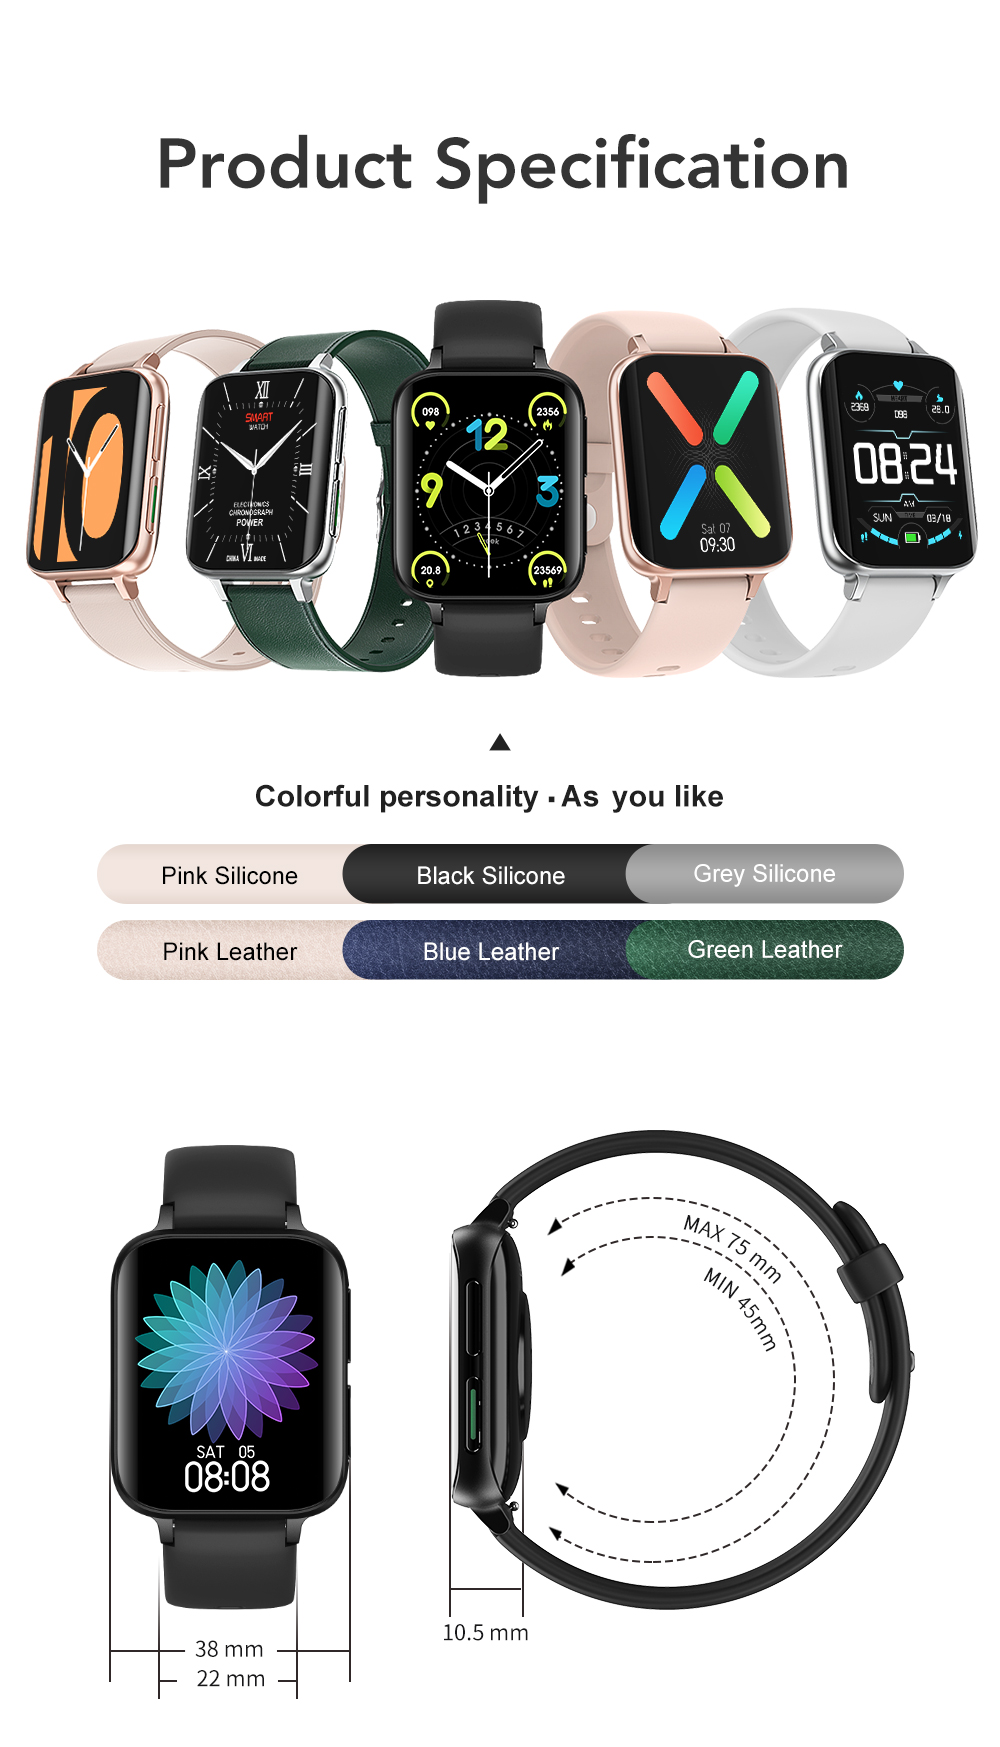 Hca9a9212c64a479ba9b975f4ea979230r SANLEPUS 2021 New Smart Watch Men Women Dial Call Watch Waterproof Smartwatch MP3 Player For OPPO Android Apple Xiaomi